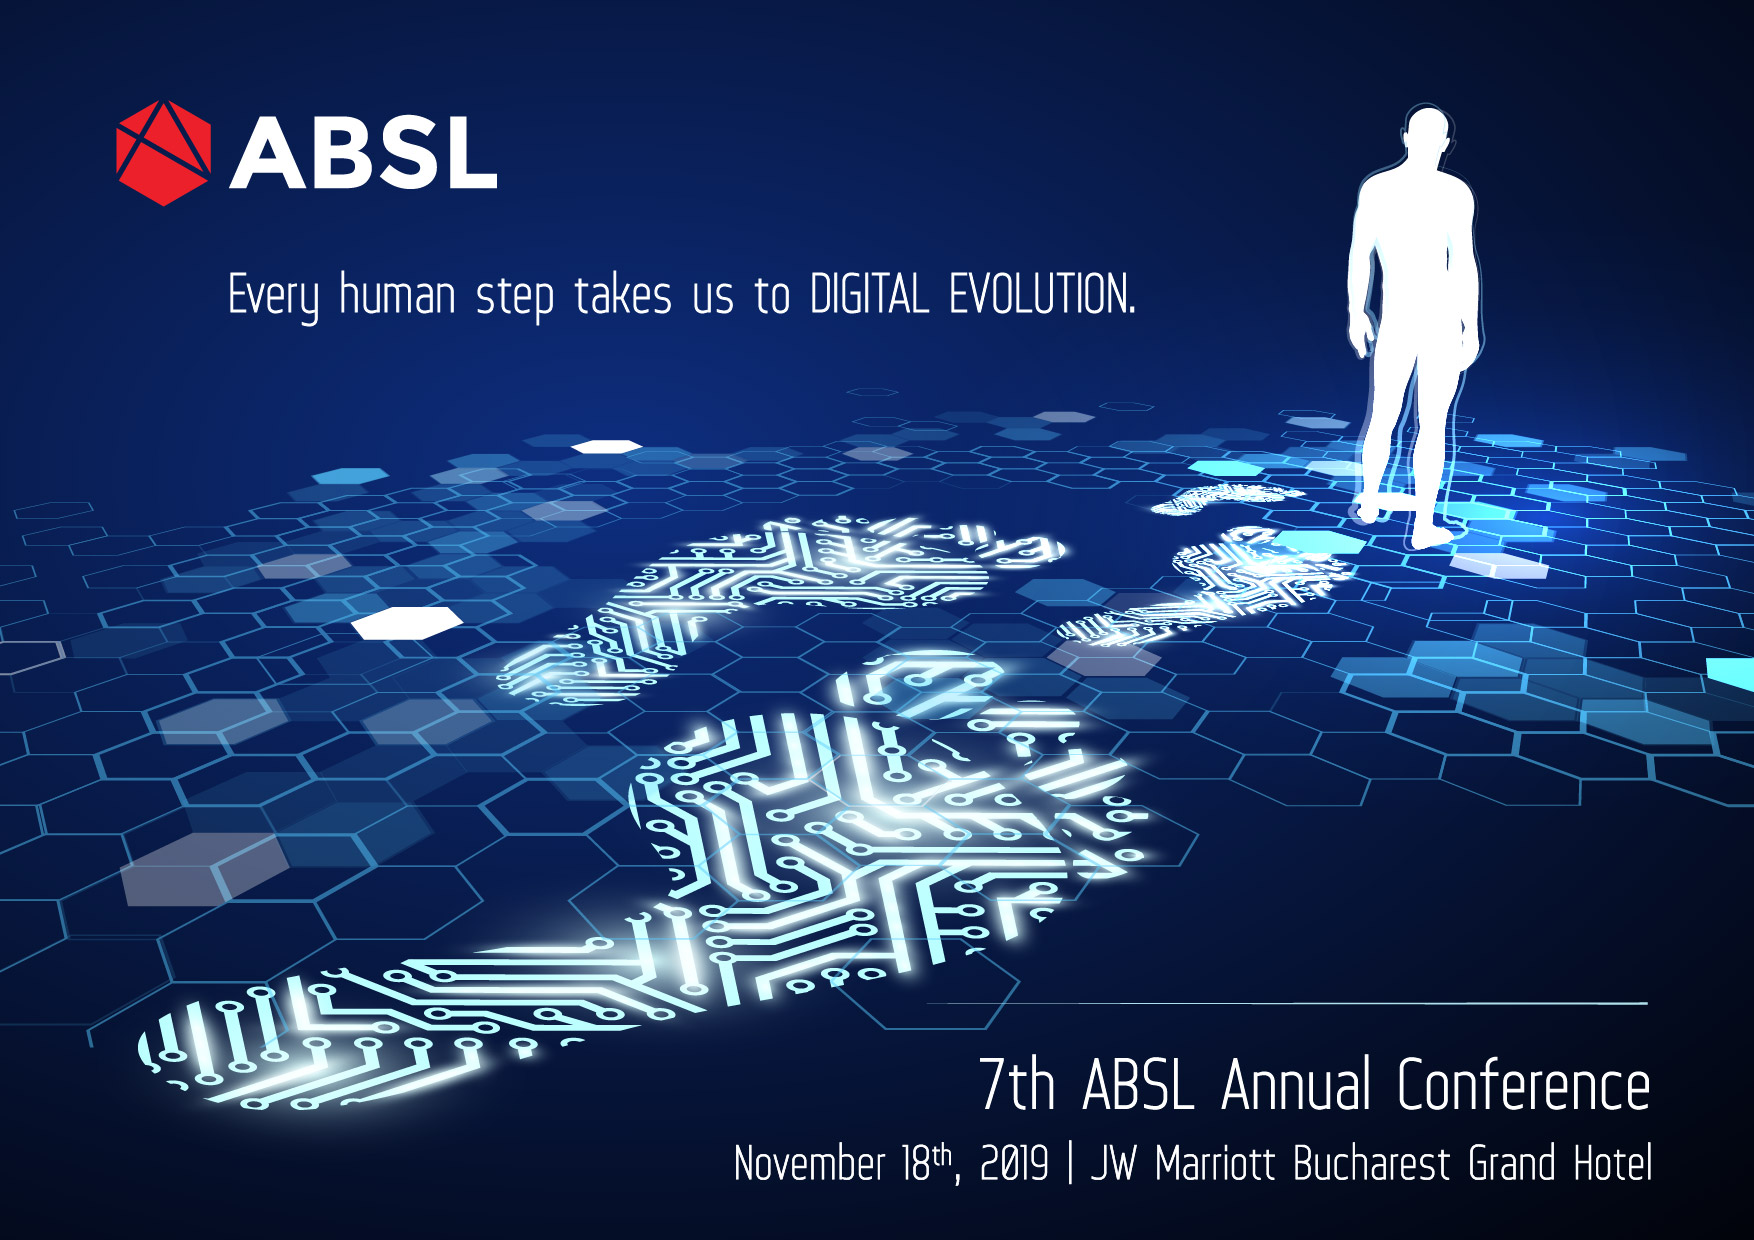 ABSL 7th Annual Conference